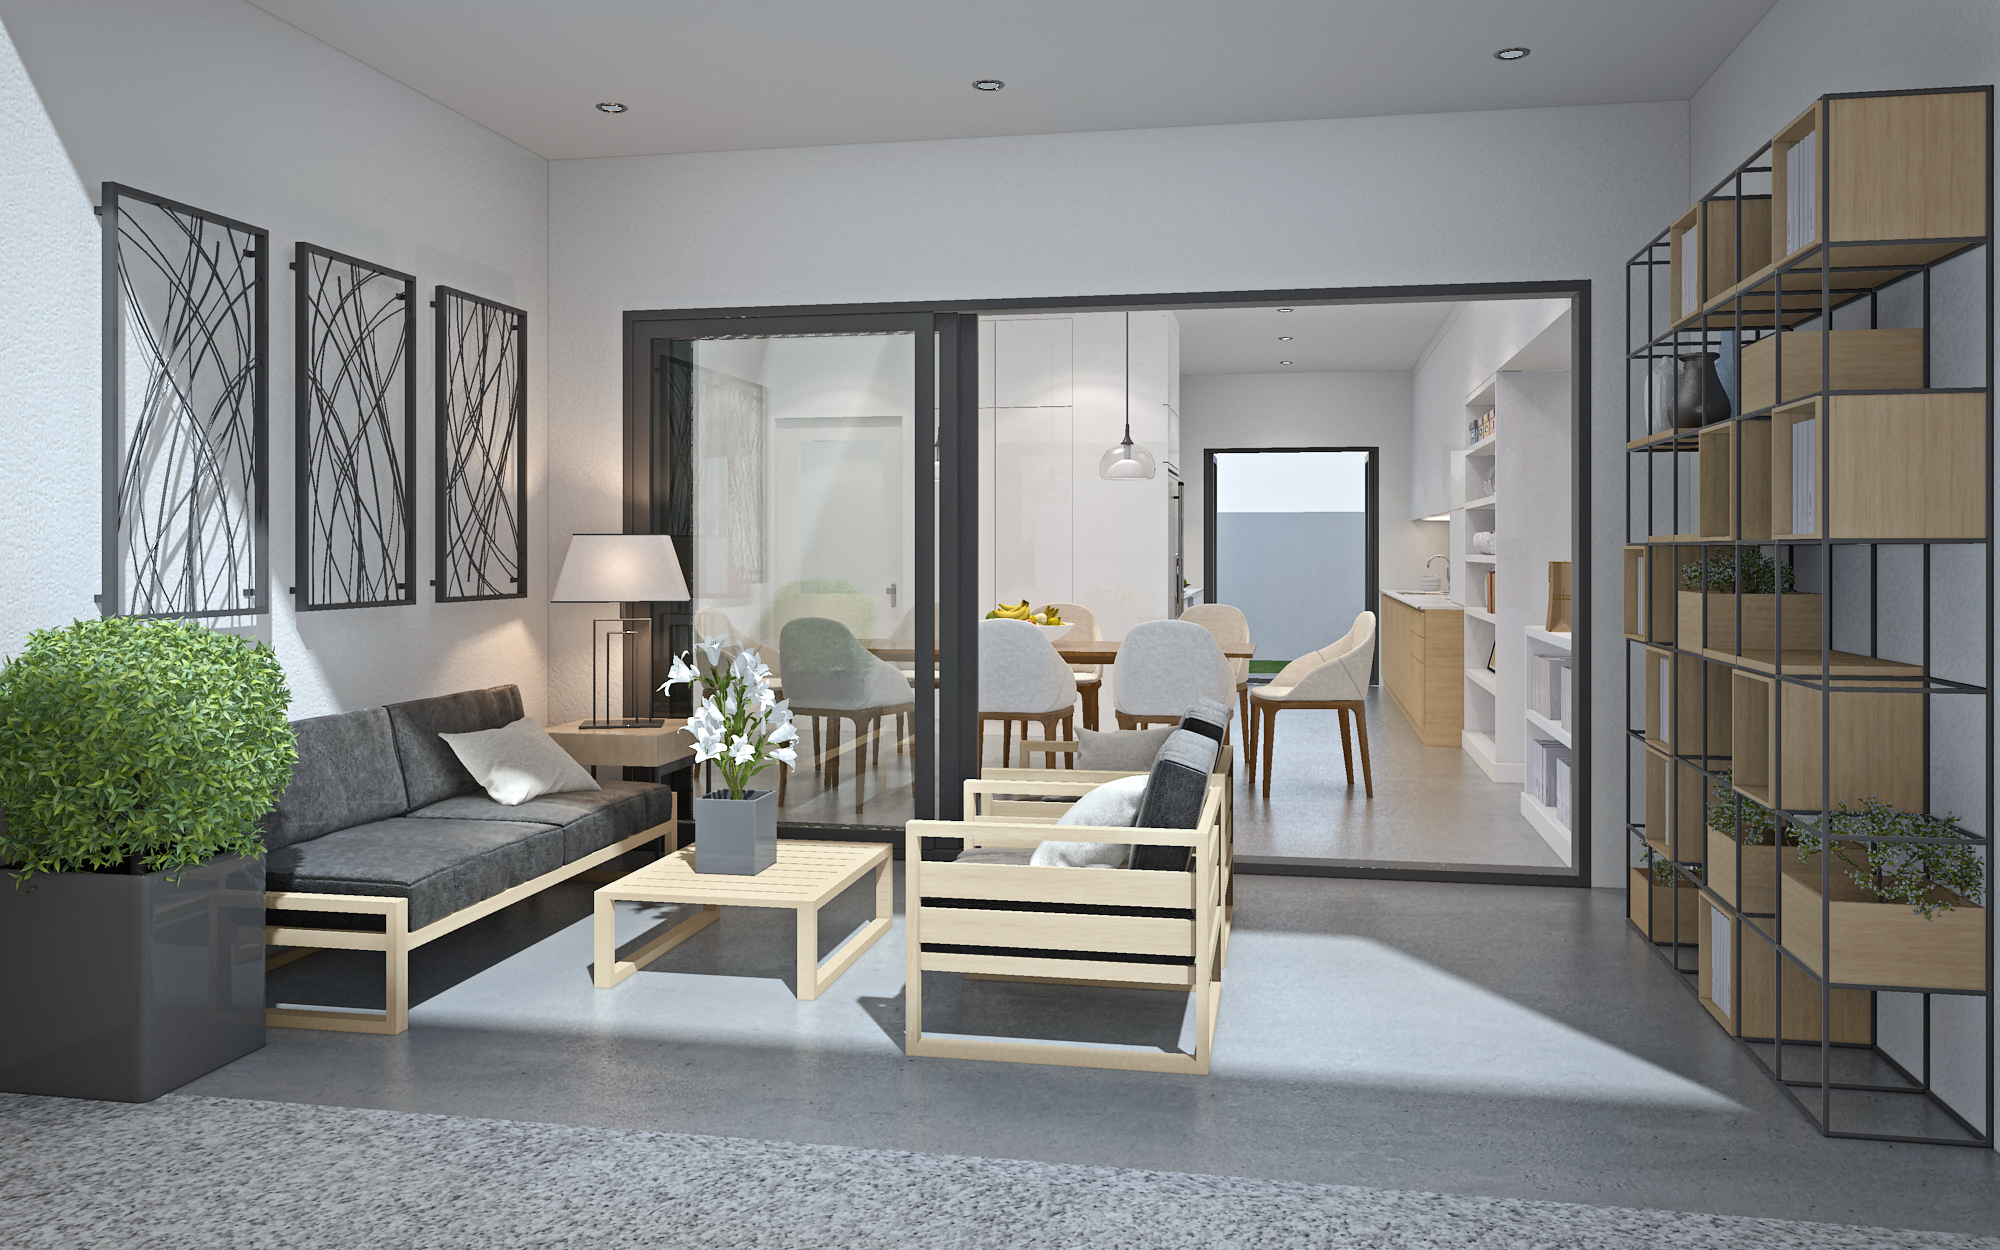 3D-HOME-ALFRESCO 3D model - 3D-HOME-ALFRESCO